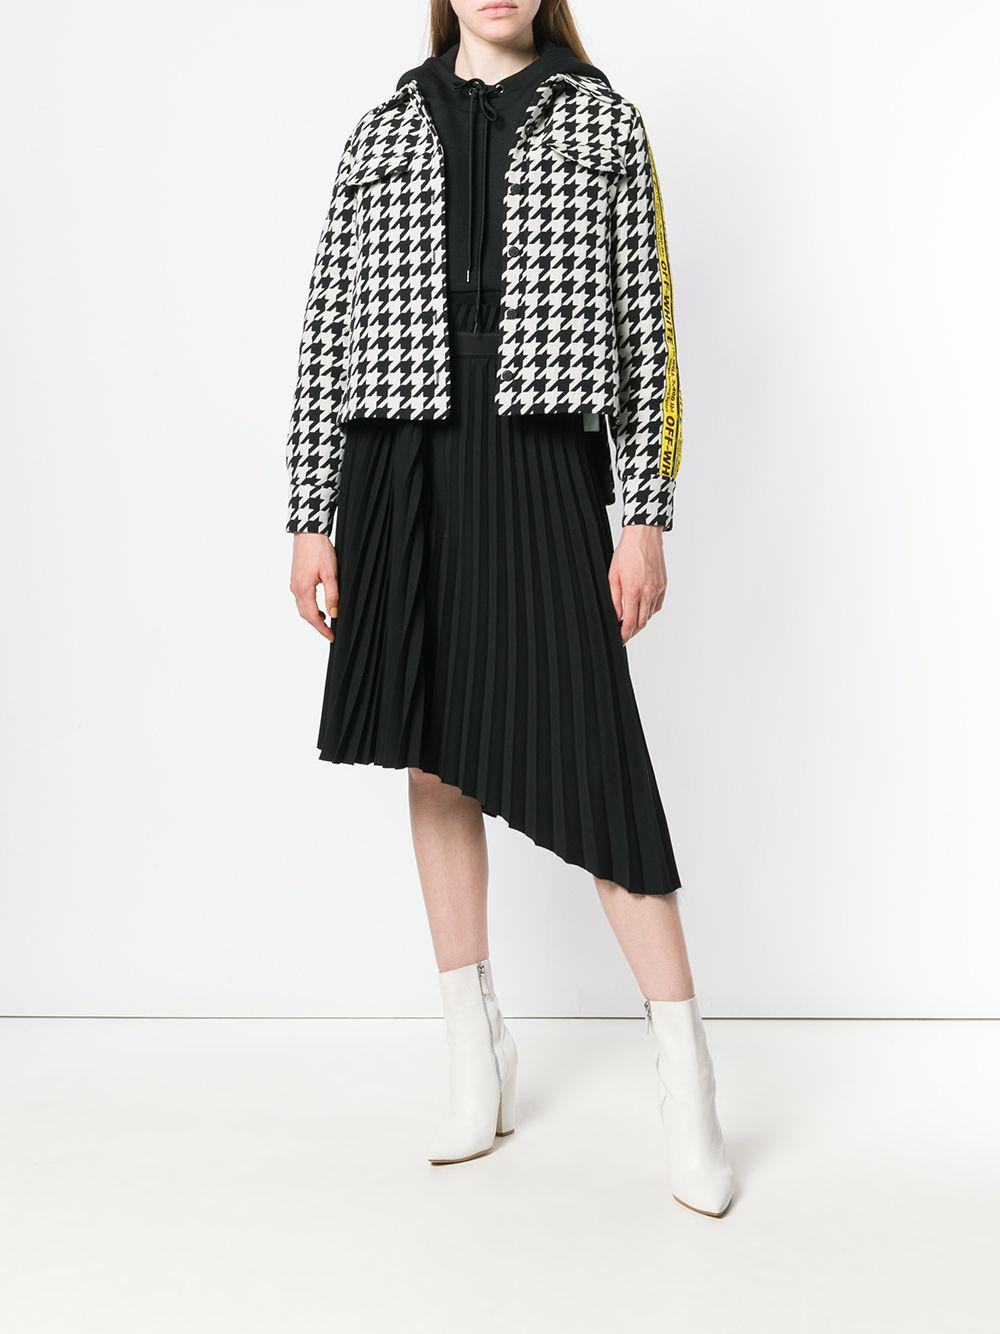 5c4d05d5a45ff Lyst - Off-White c o Virgil Abloh Canvas Jacquard-trimmed Houndstooth  Wool-blend Jacket in Black - Save 60%